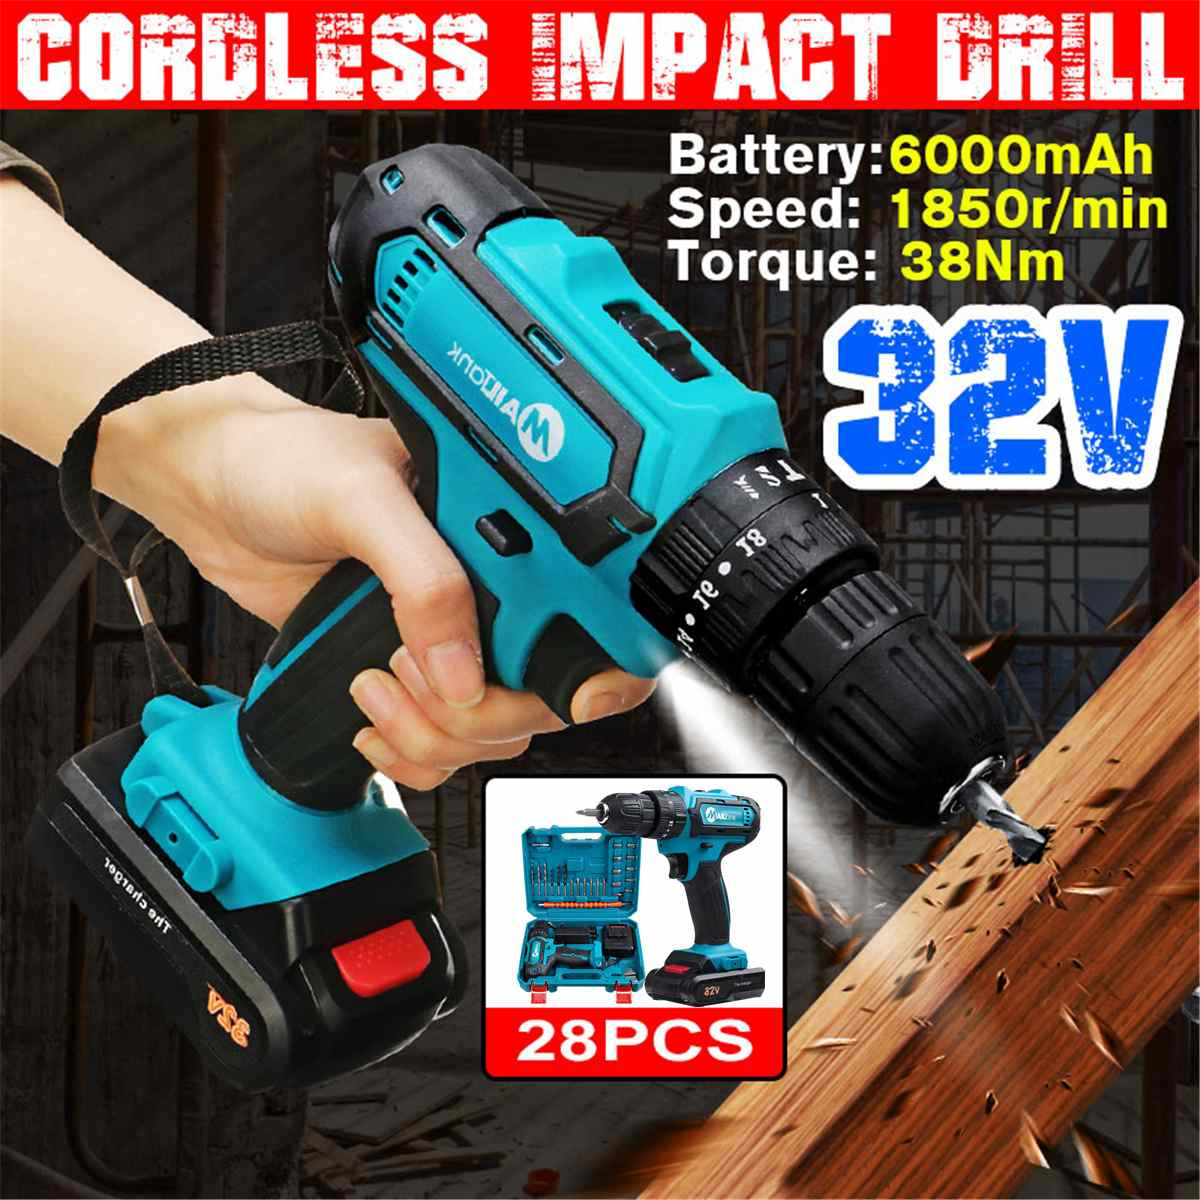 3 In 1 32V Cordless Electric Drill Hammer Screwdriver 2 Speed LED Lighting Impact Drill with Battery 38Nm 18 3 Torque Power Tool